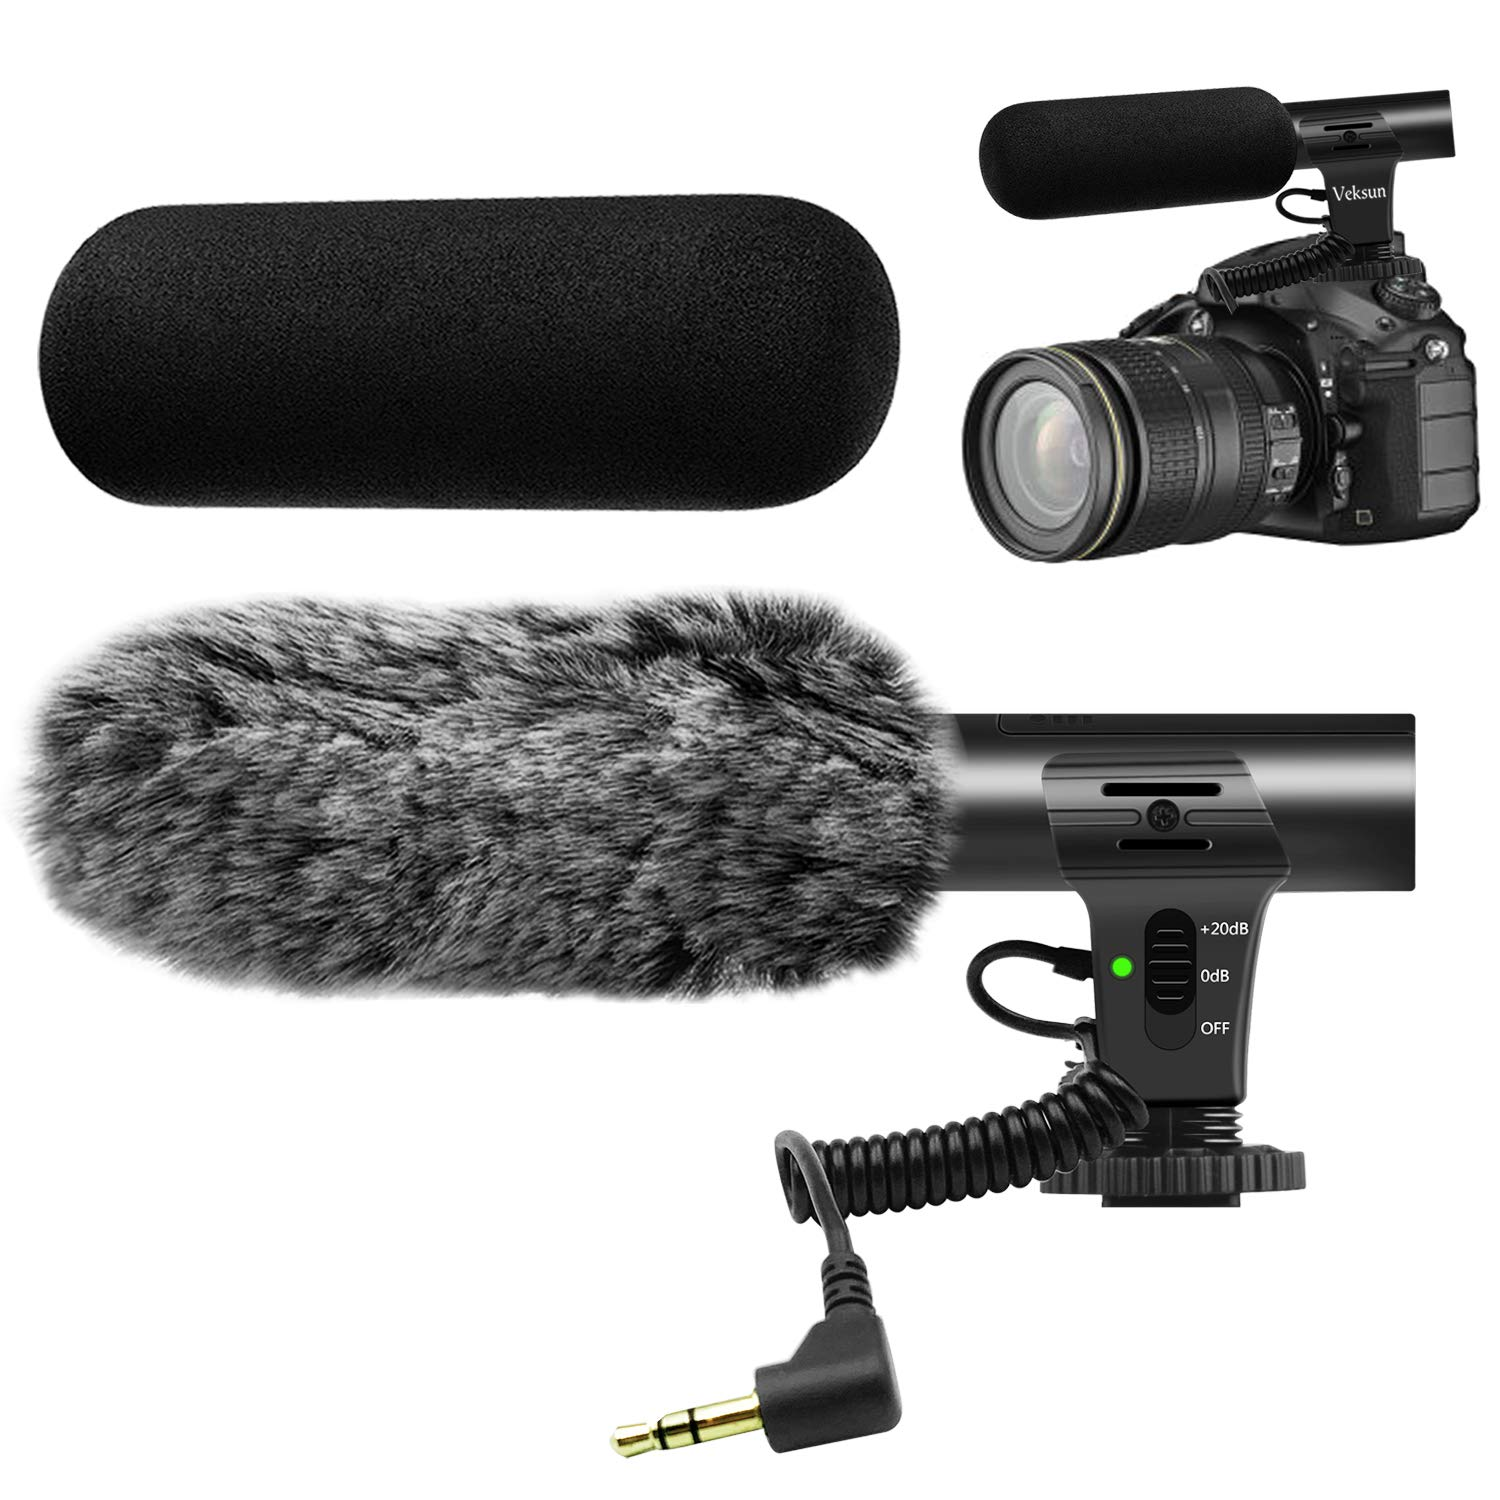 Camera Microphone,Veksun Video Microphone for DSLR Interview Shotgun Mic for Canon Nikon Sony Panasonic Fuji Videomic with Windscreen 3.5mm Jack